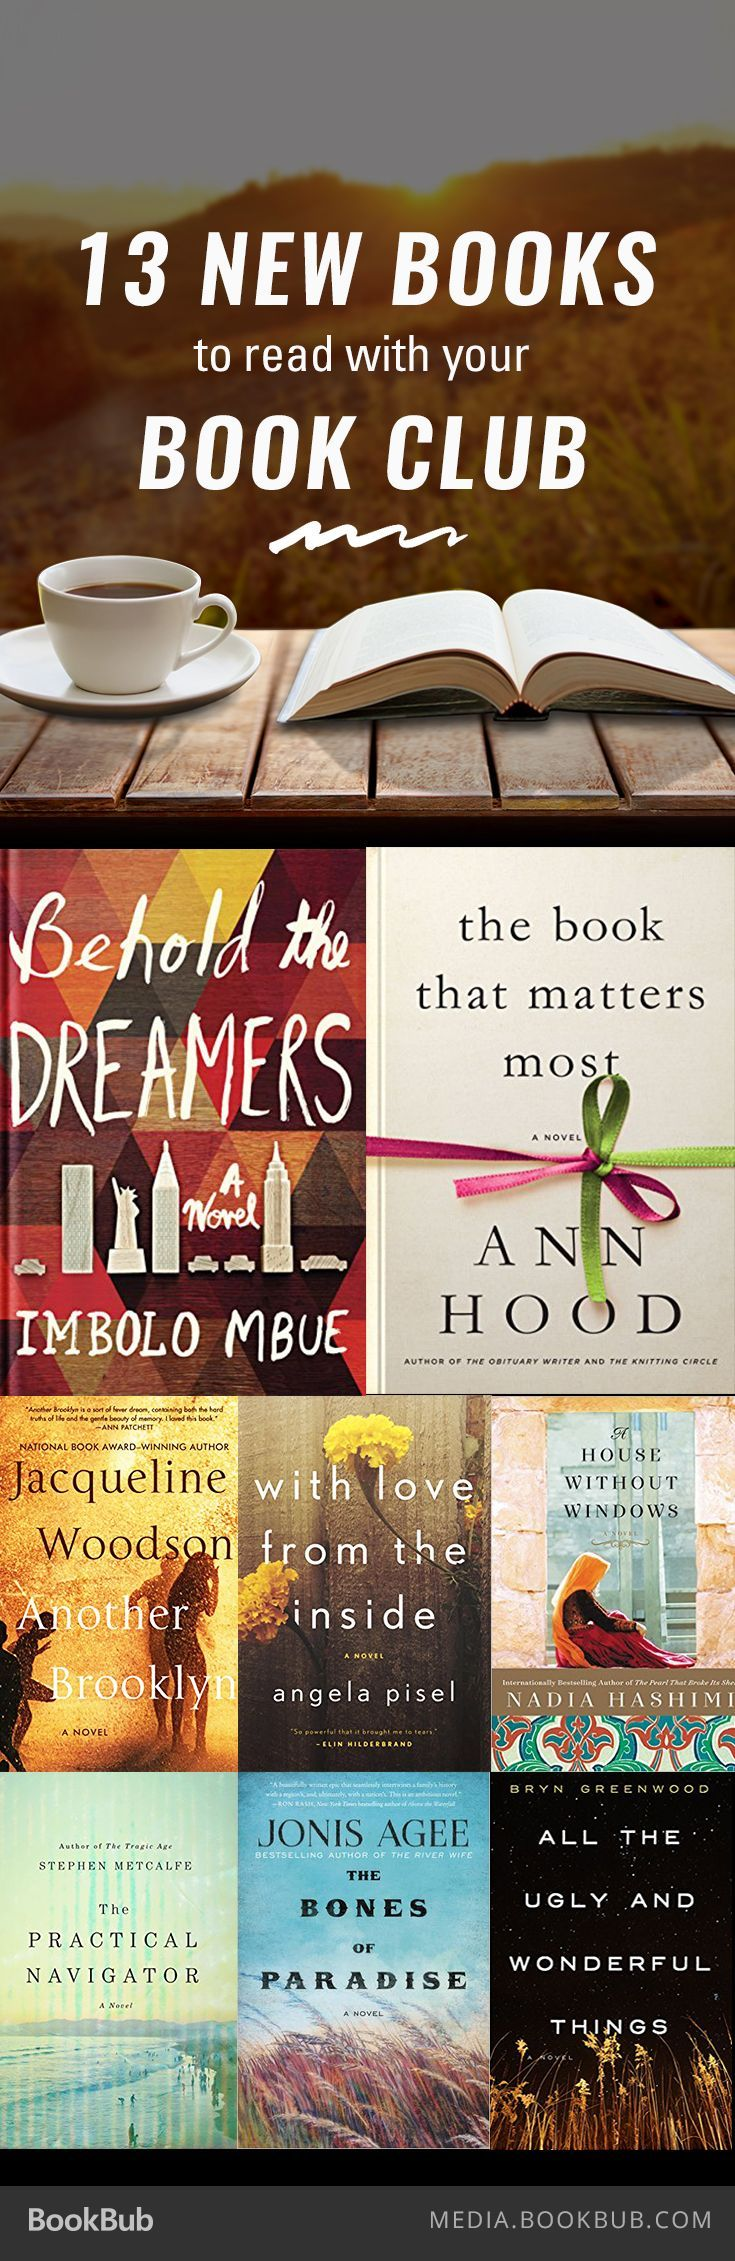 13 New Books to Read with Your Book Club